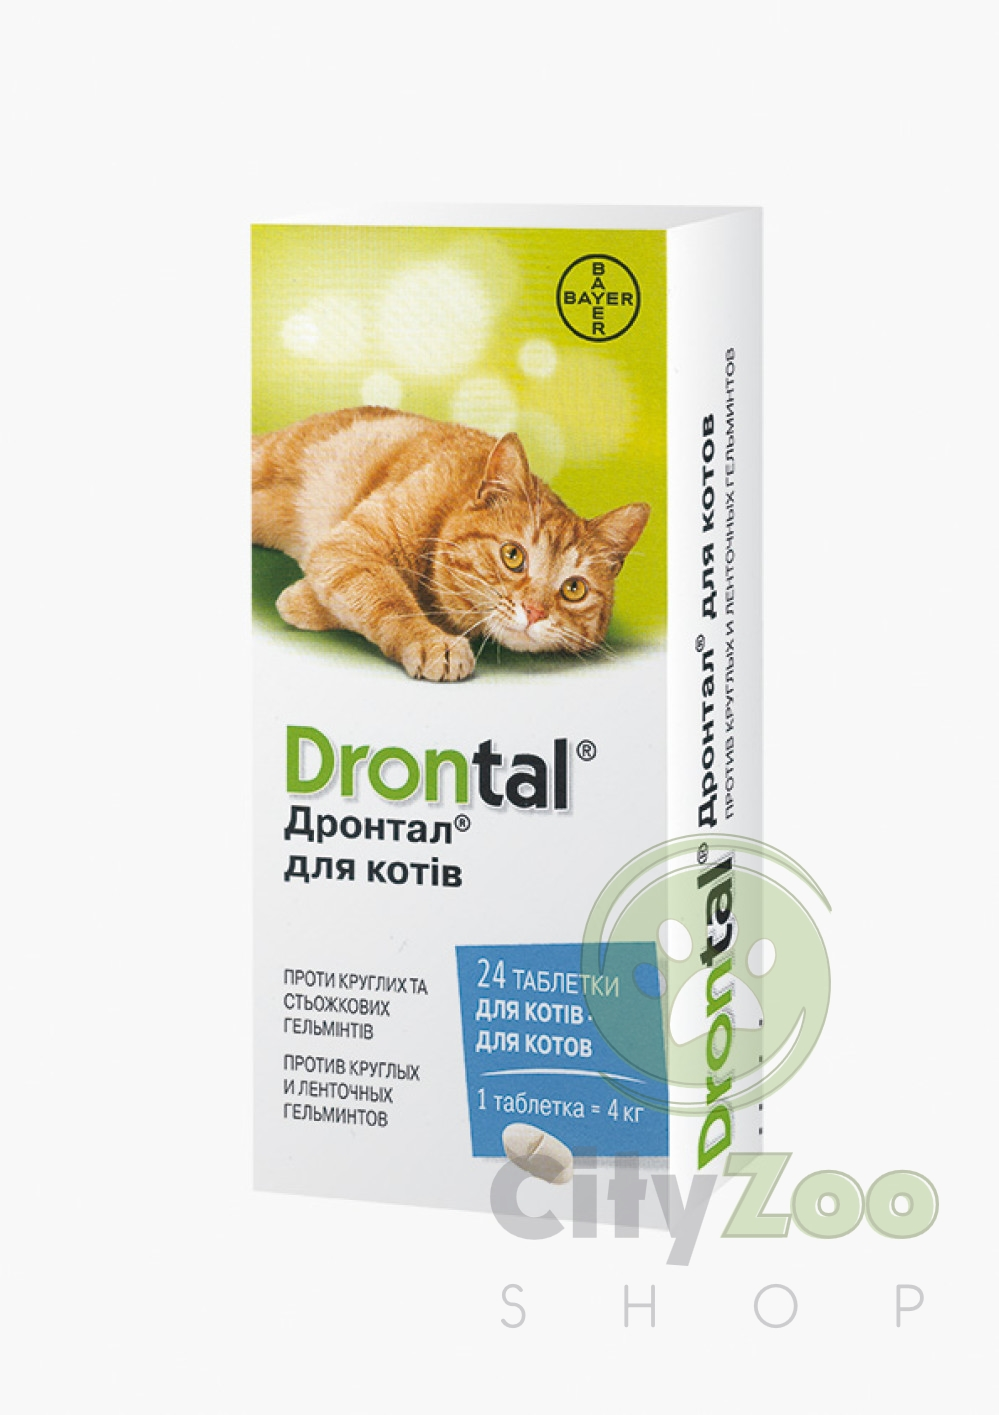 zoo/Bayer_Drontal_dlja_koshek